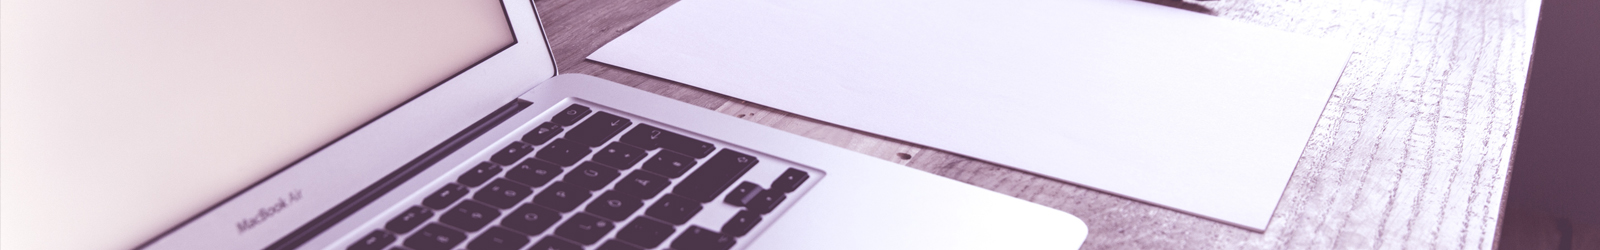 Laptop and paper image banner